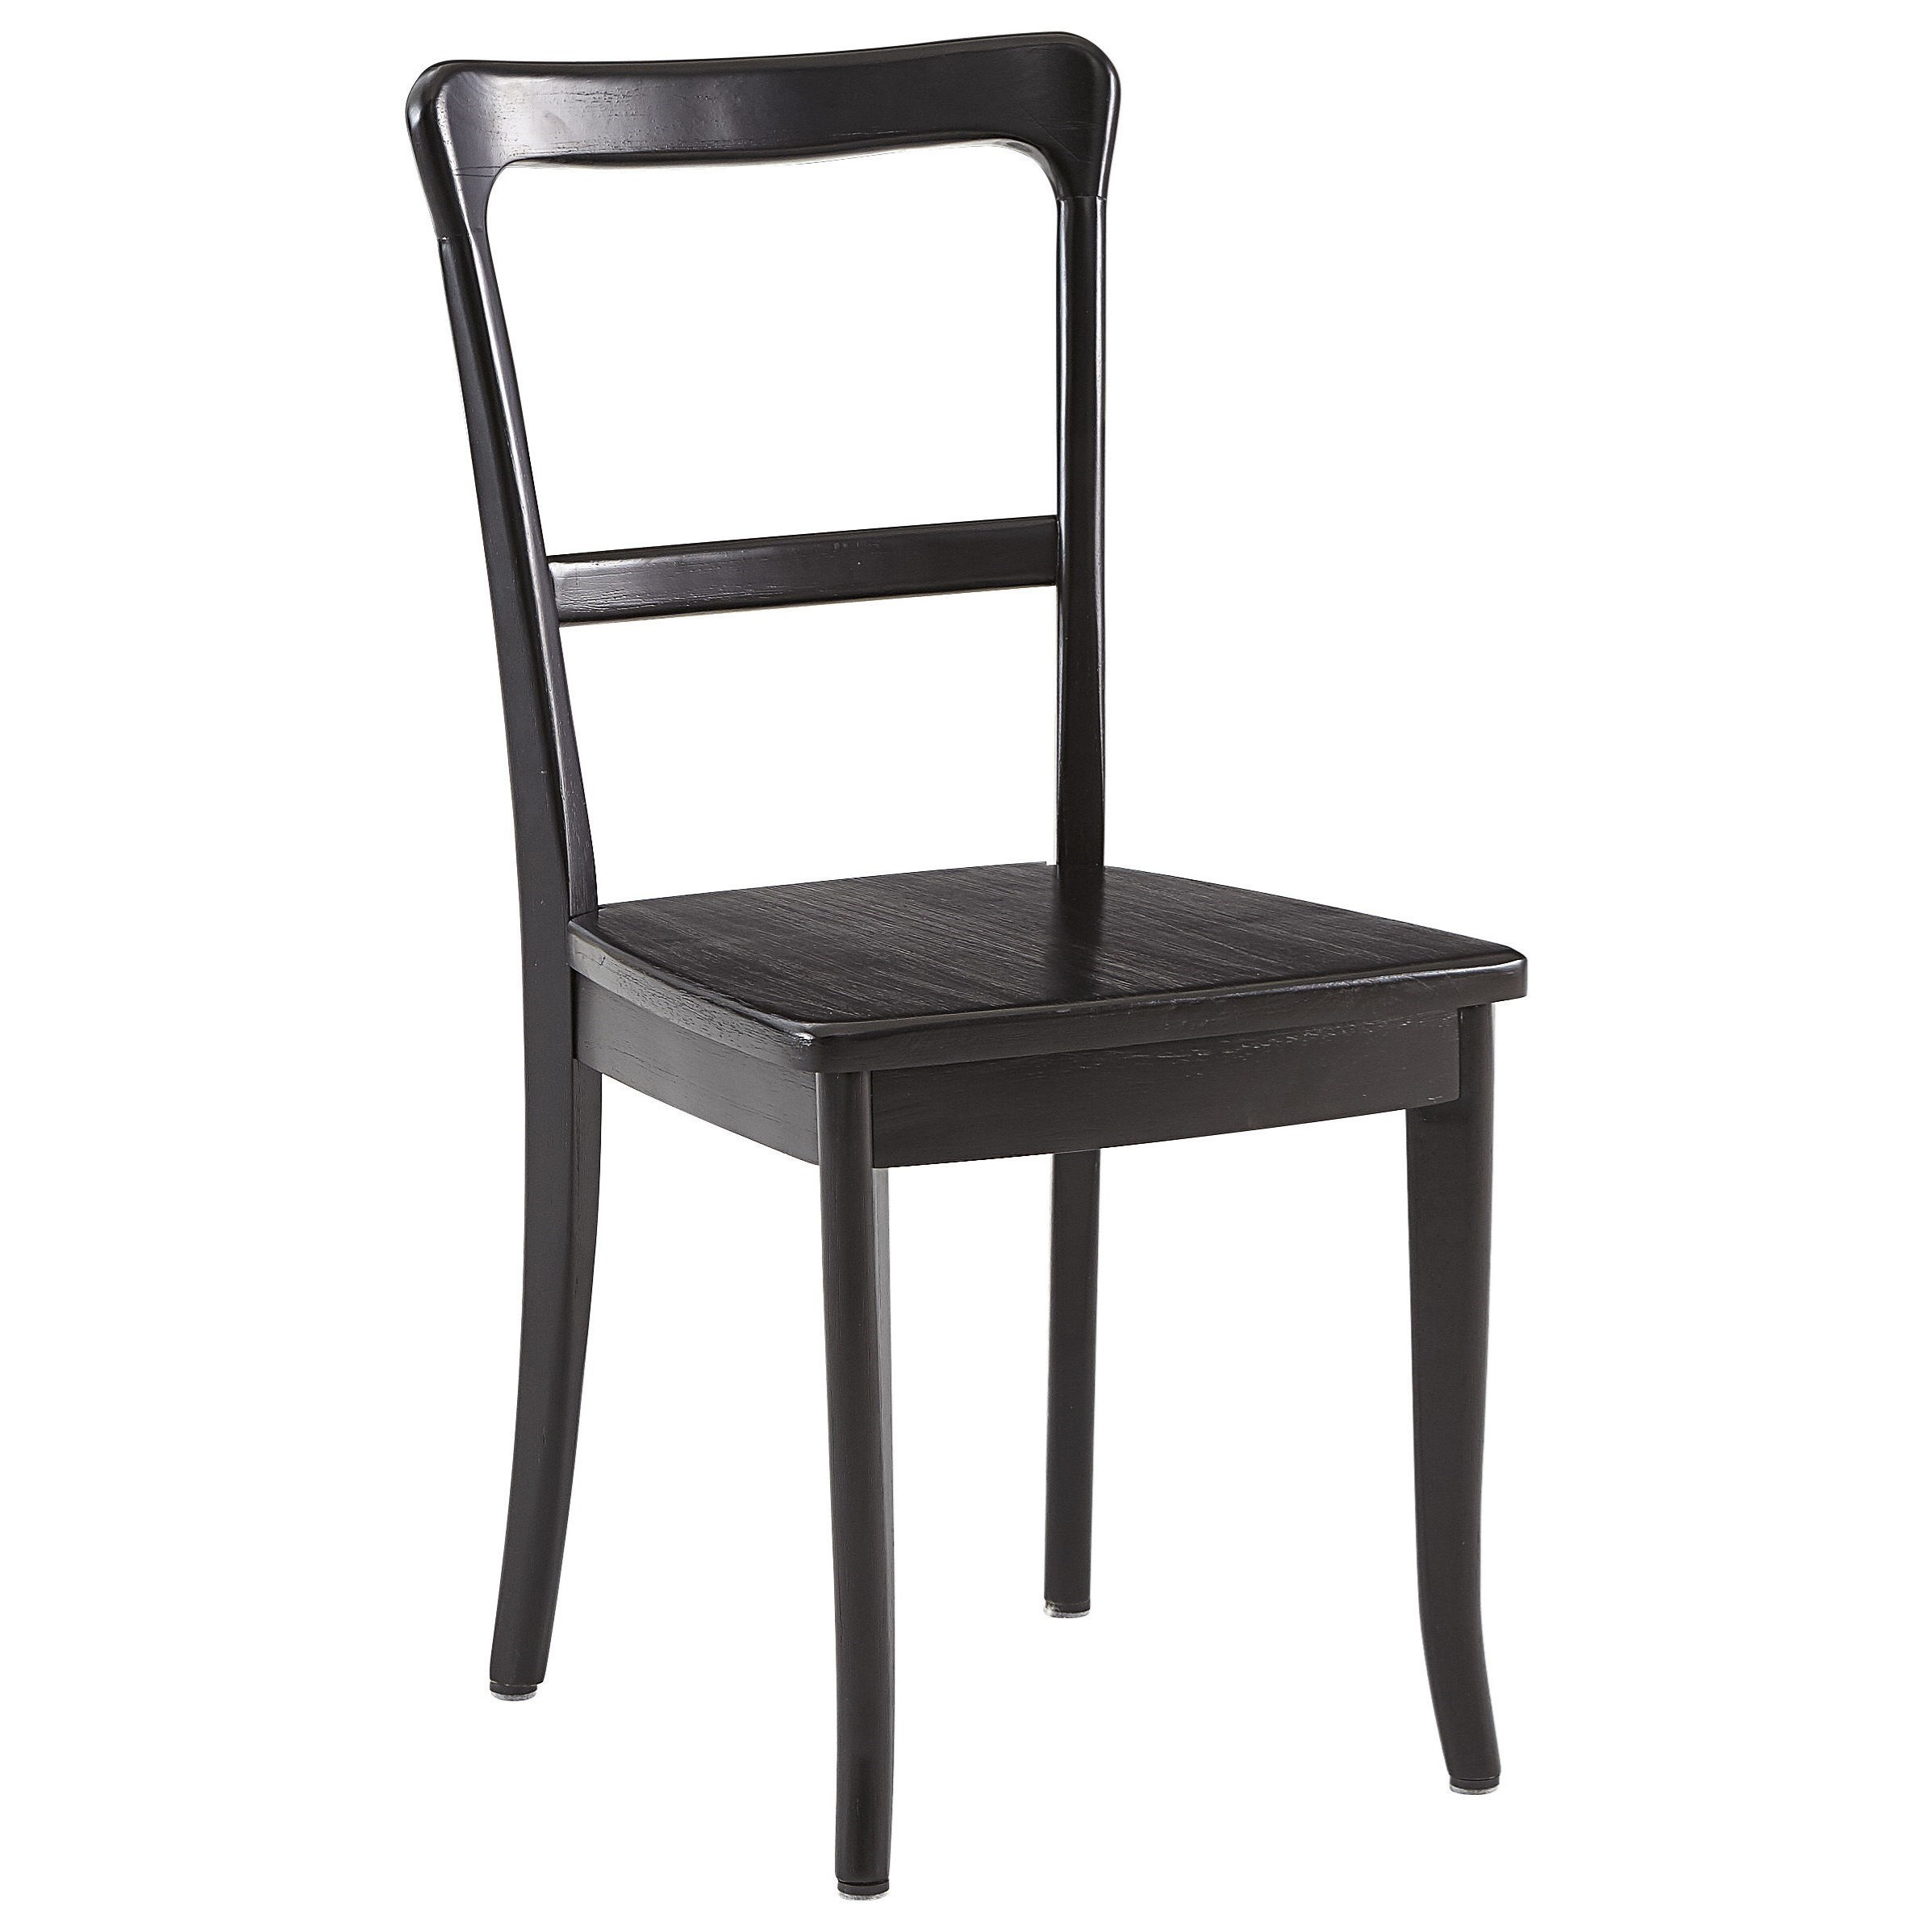 Progressive Furniture Teresa Rustic Dining Side Chair with Black Finish  sc 1 st  Van Hill Furniture & Progressive Furniture Teresa Rustic Dining Side Chair with Black ...